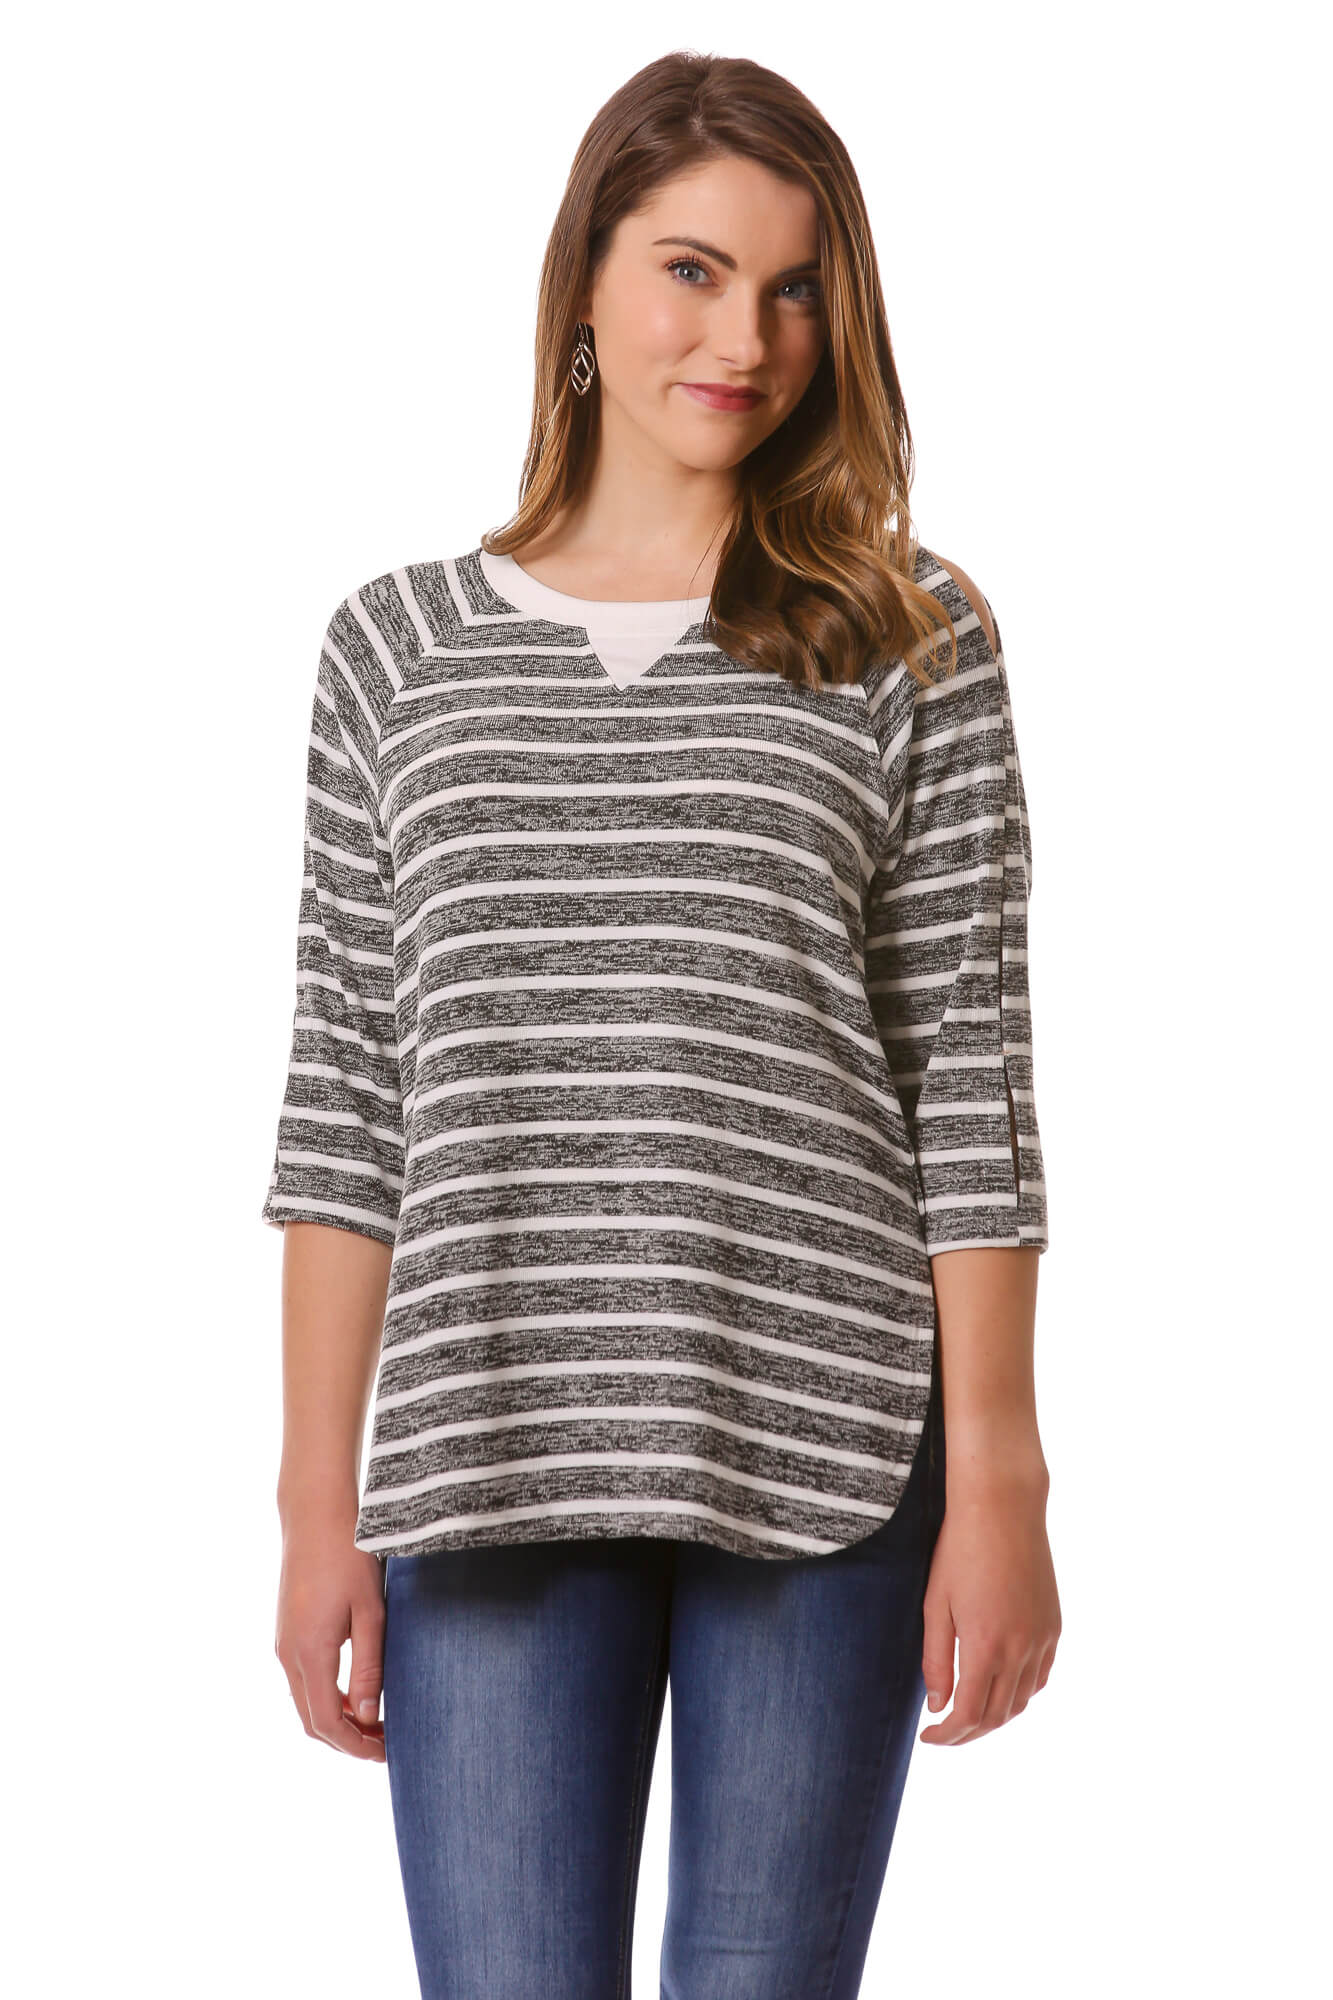 Women's Grey and White Striped Basic Long Tee, Open Sleeve Color Block